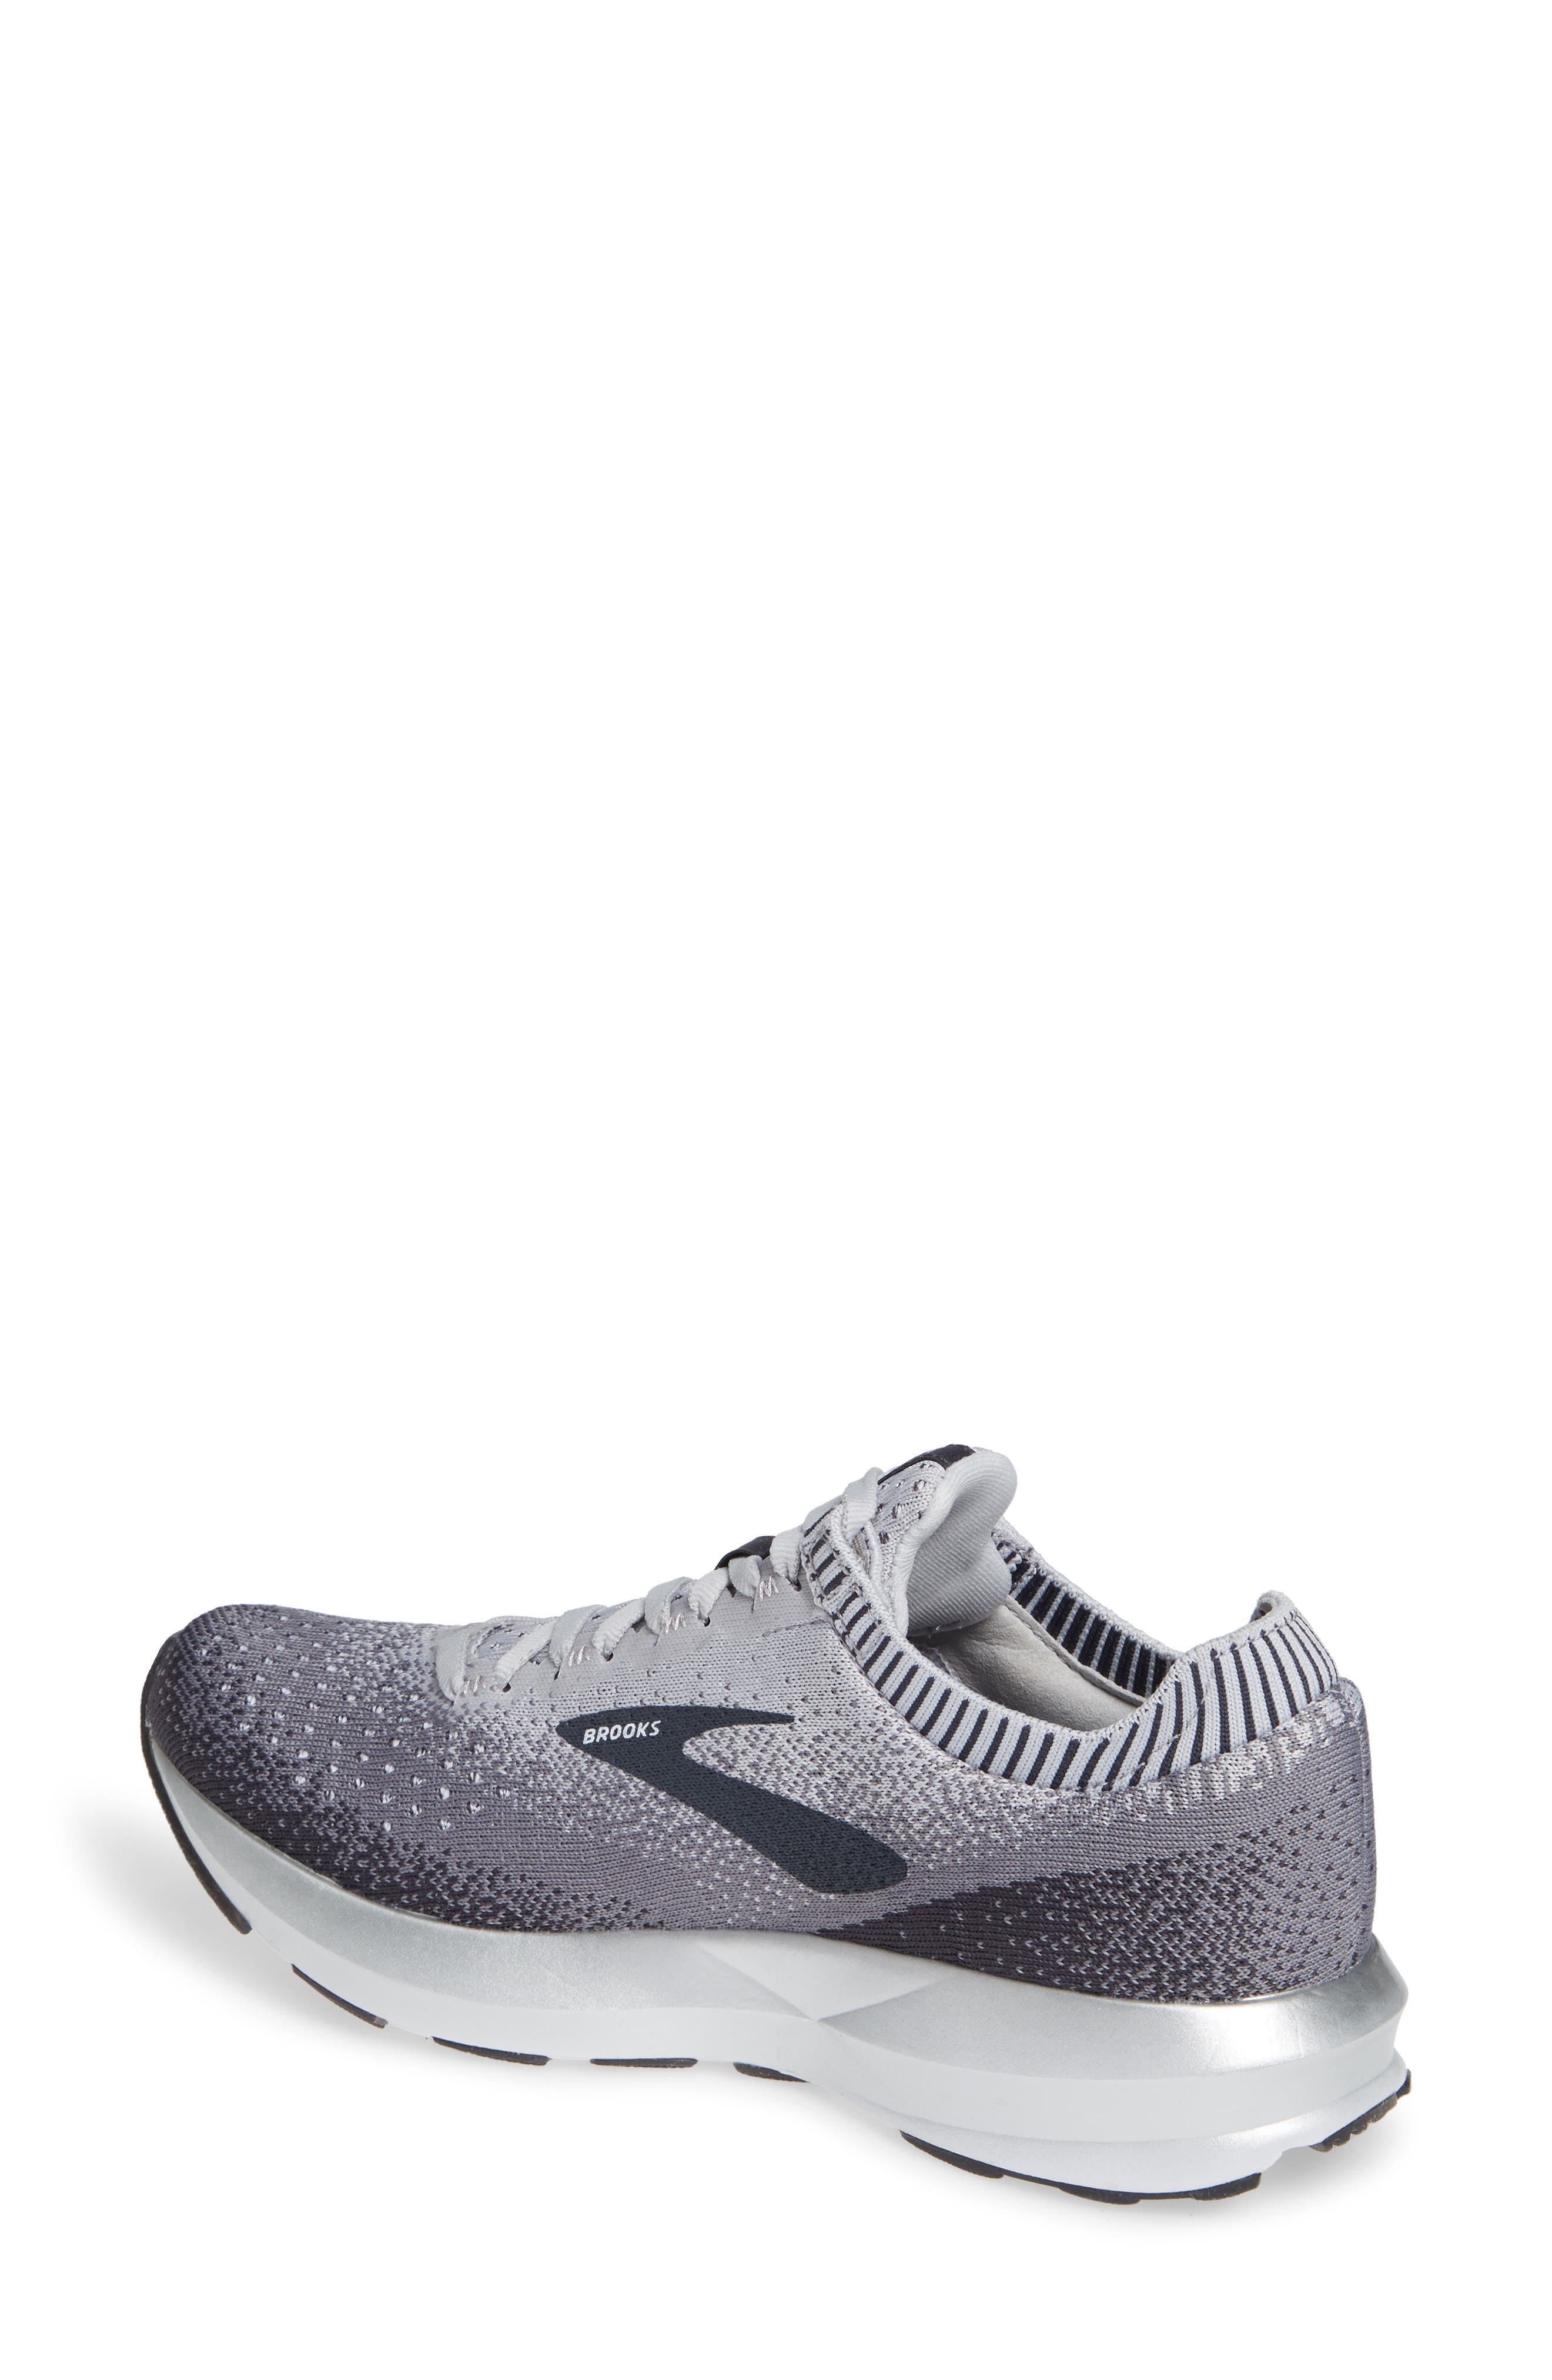 Levitate 2 Running Shoe,                             Alternate thumbnail 2, color,                             GREY/ EBONY/ WHITE